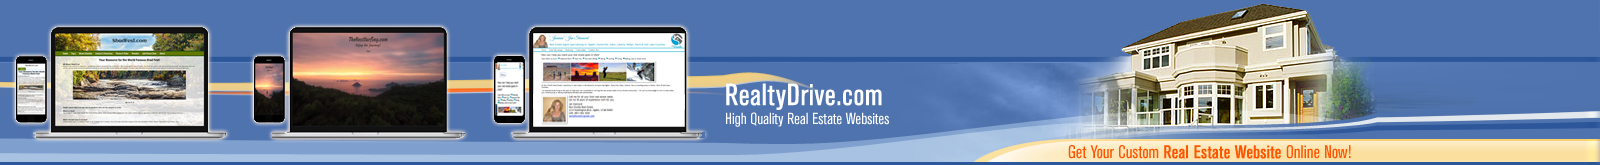 realtydrive.com